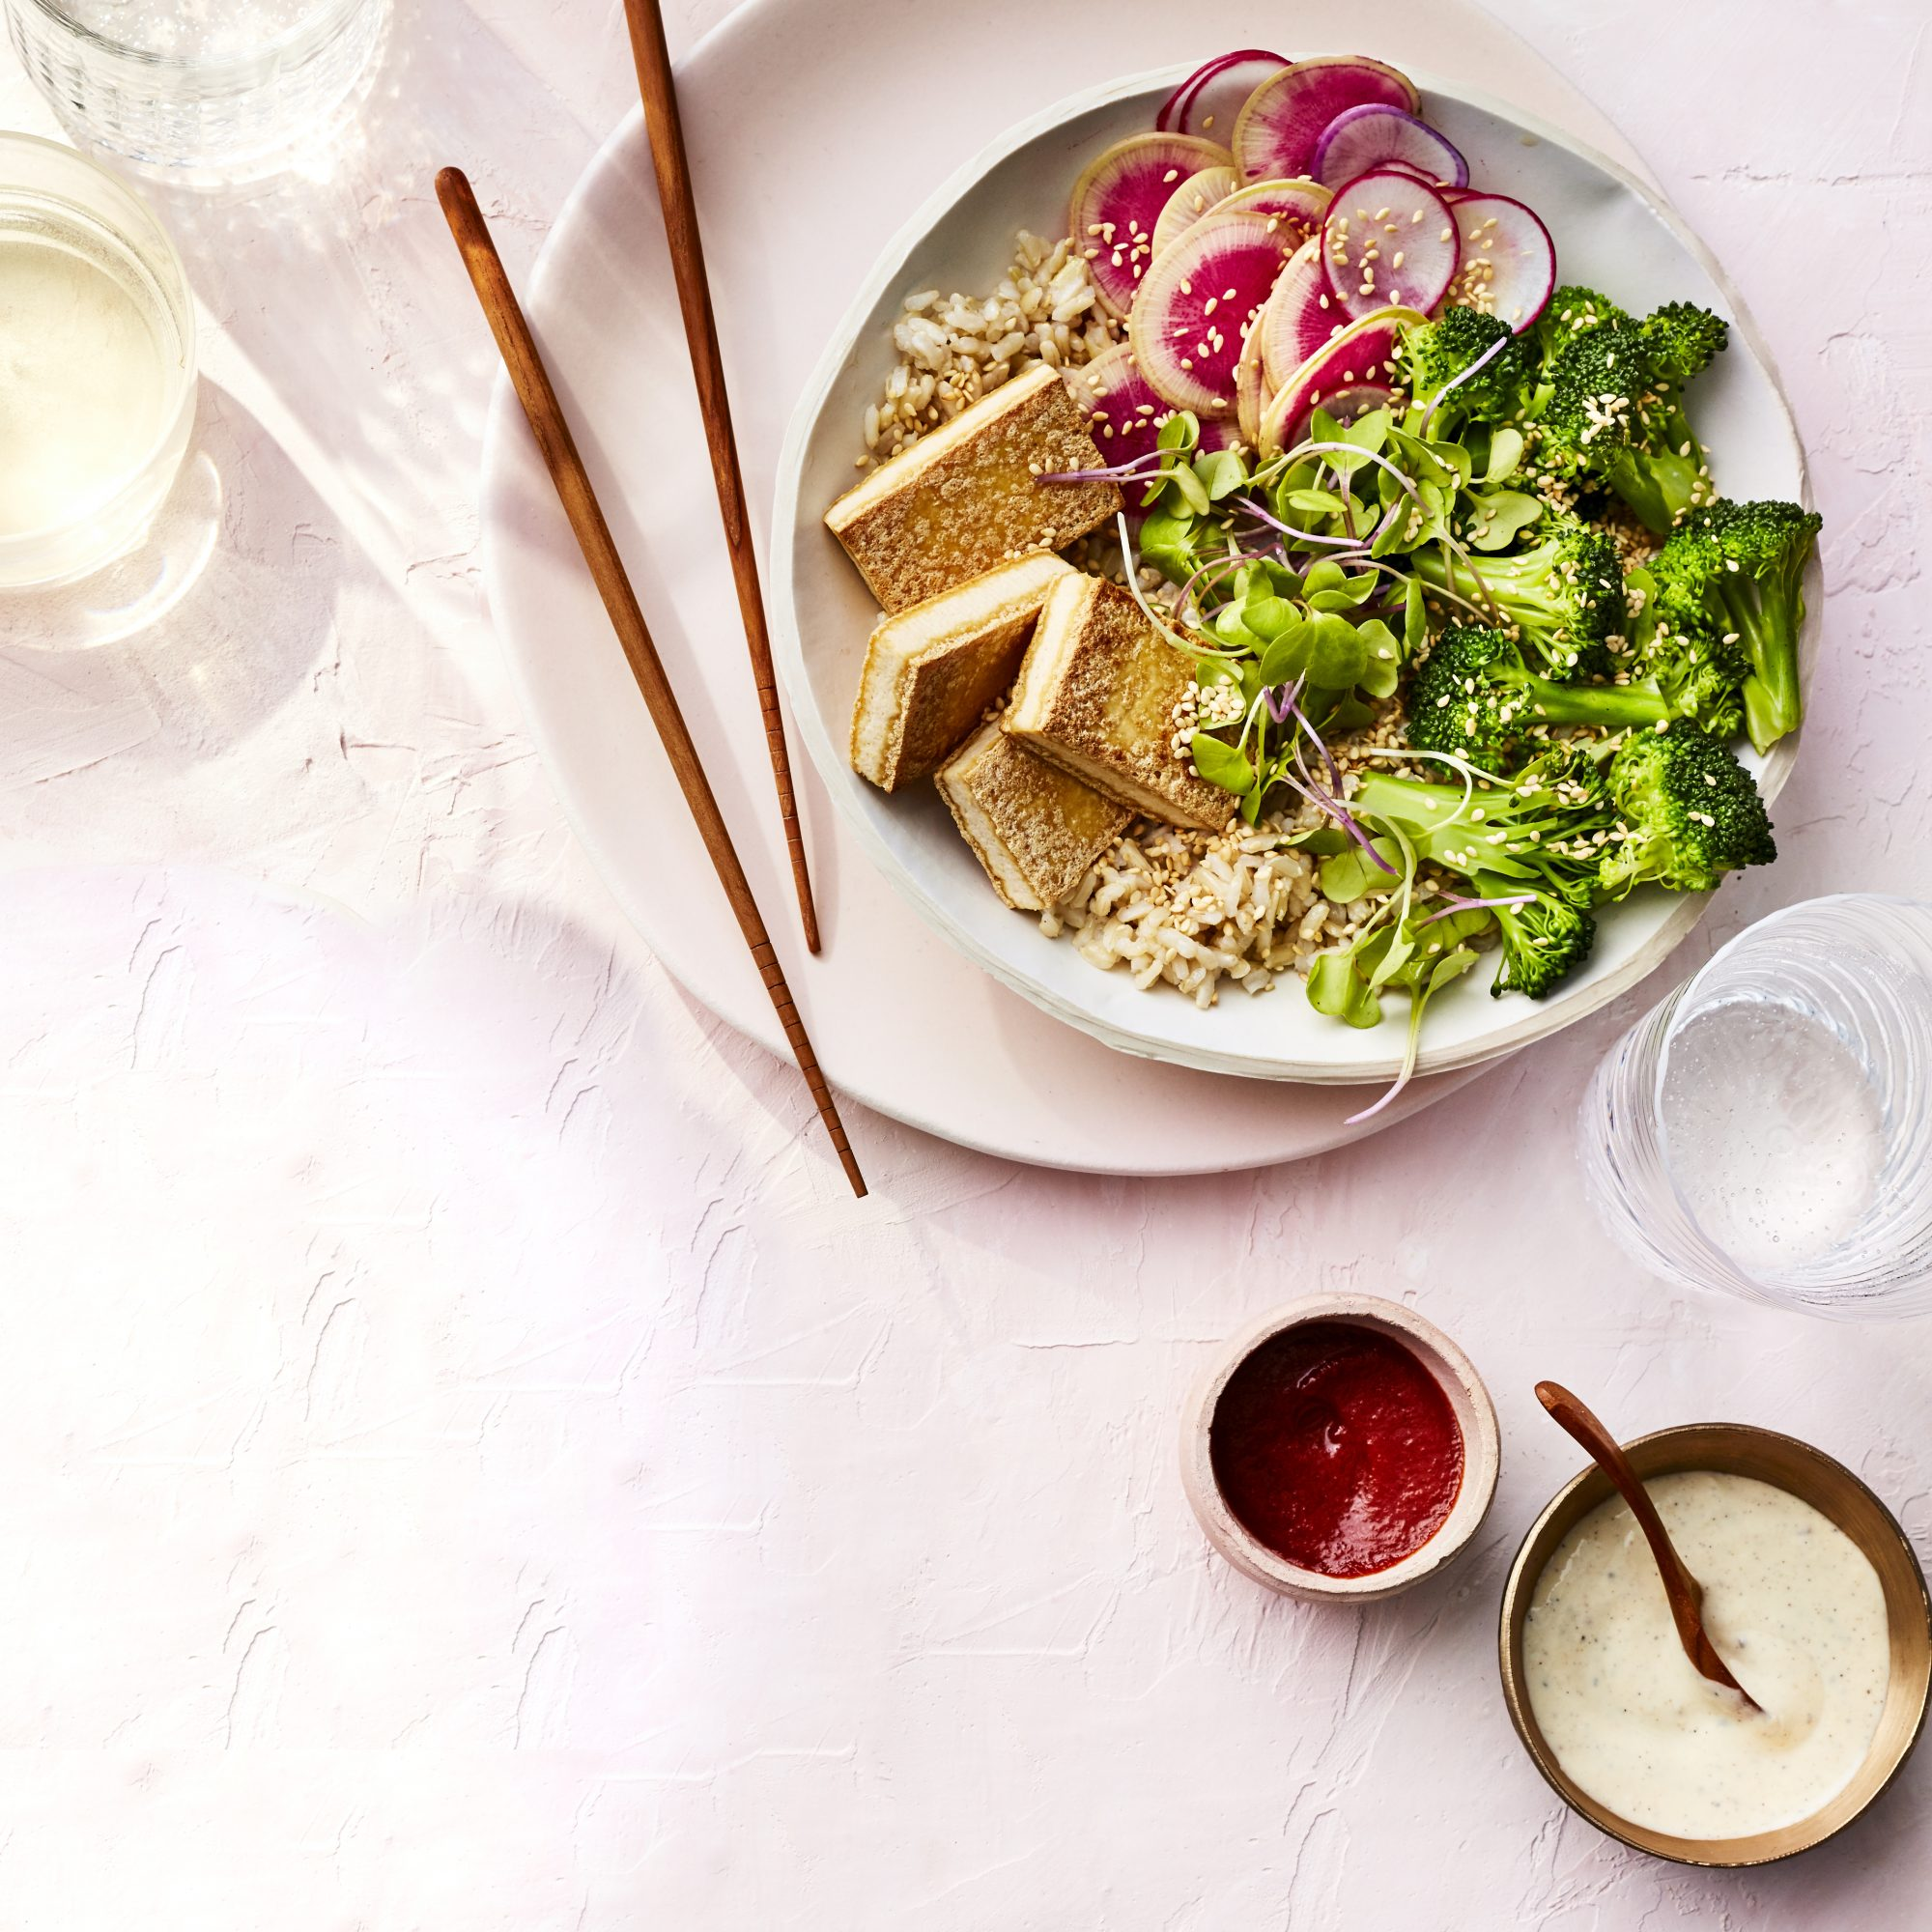 Brown Rice Bowls with Tofu, Broccoli, and Miso-Yogurt Dressing